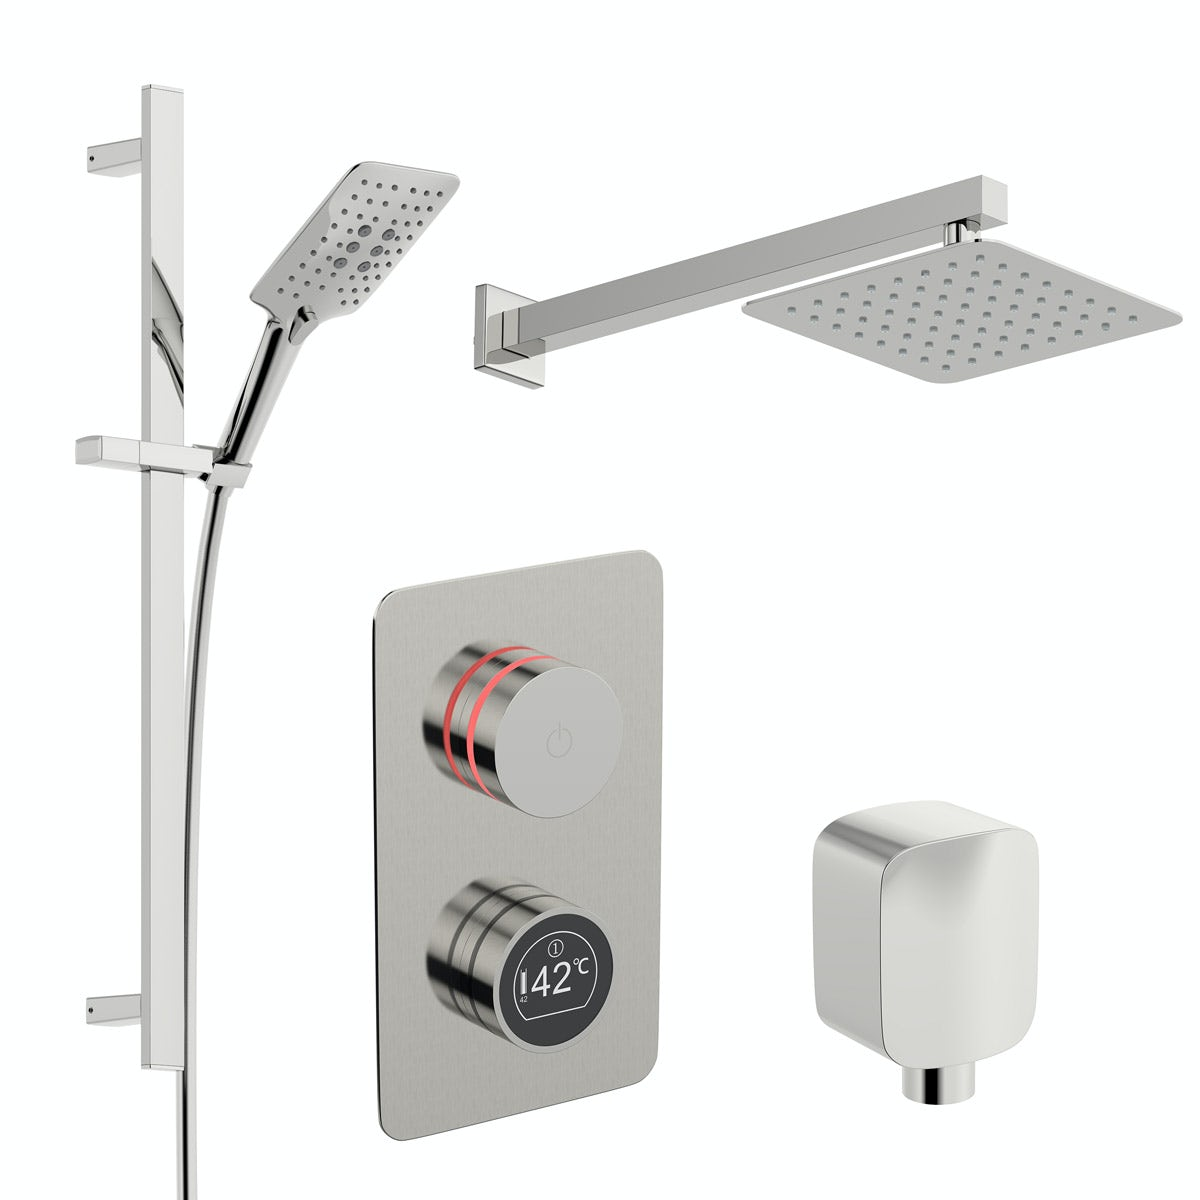 Mode Touch digital thermostatic shower set with square wall arm and slider kit